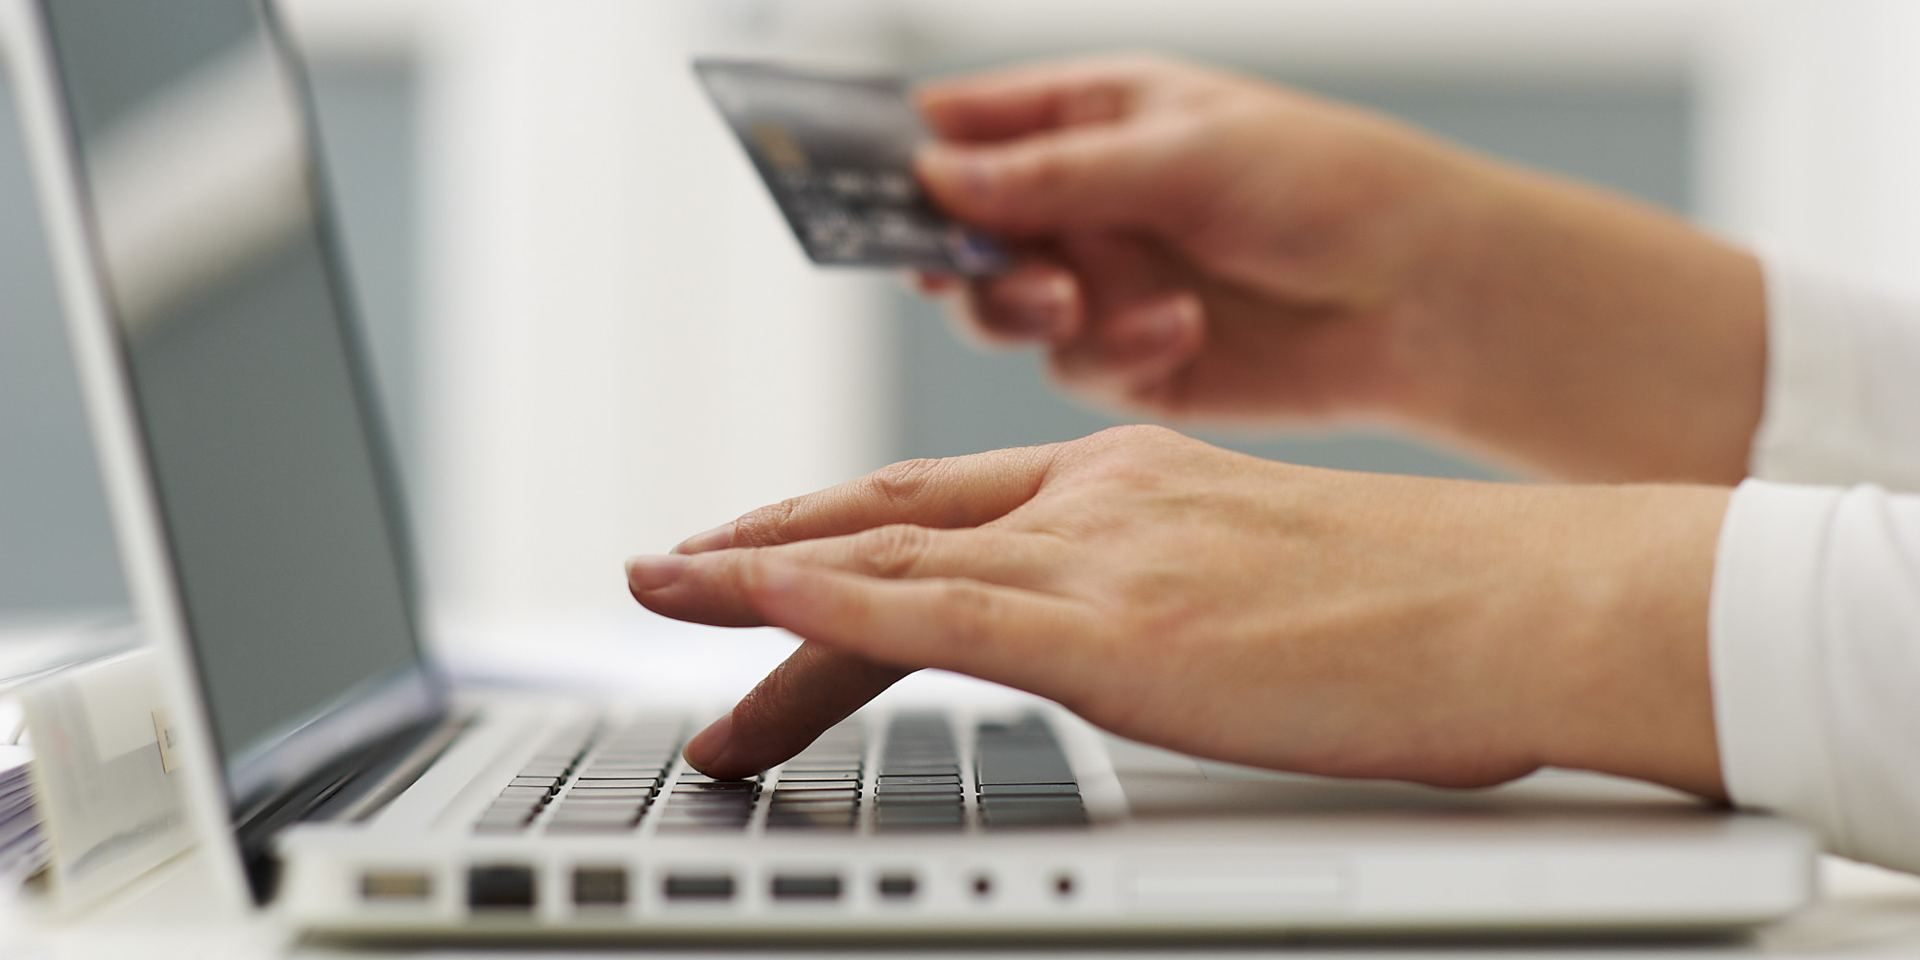 016f81622 Online shopping in Portugal up to €3 billion - Portugal Resident